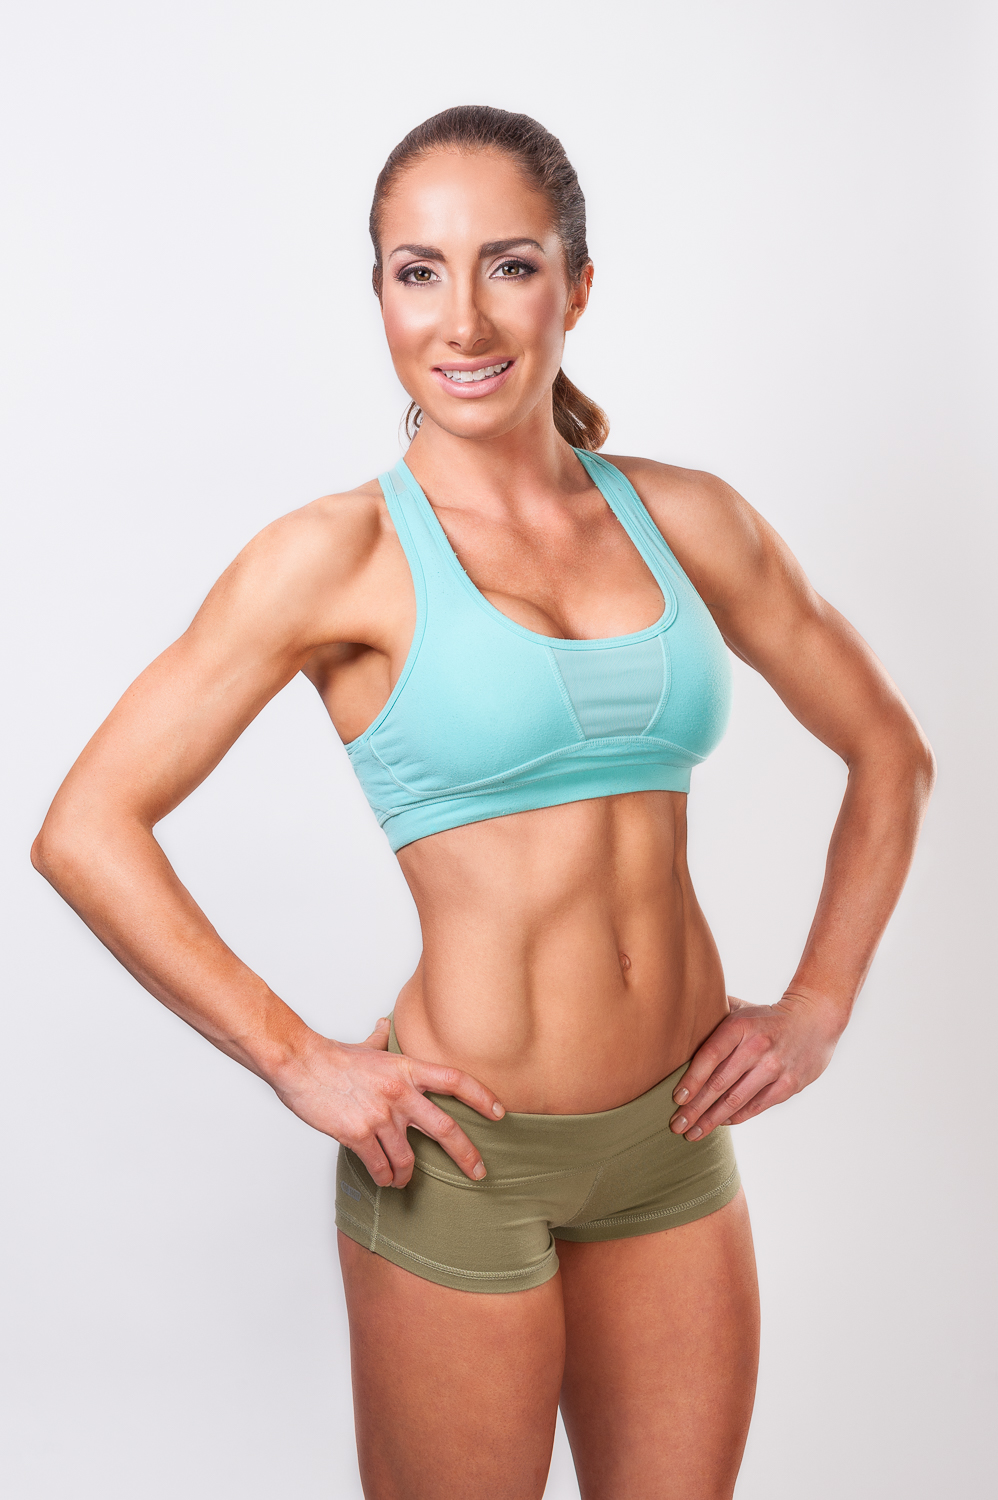 Hamilton Toronto Fitness Photographer - High Key photography by Marek Michalek.jpg